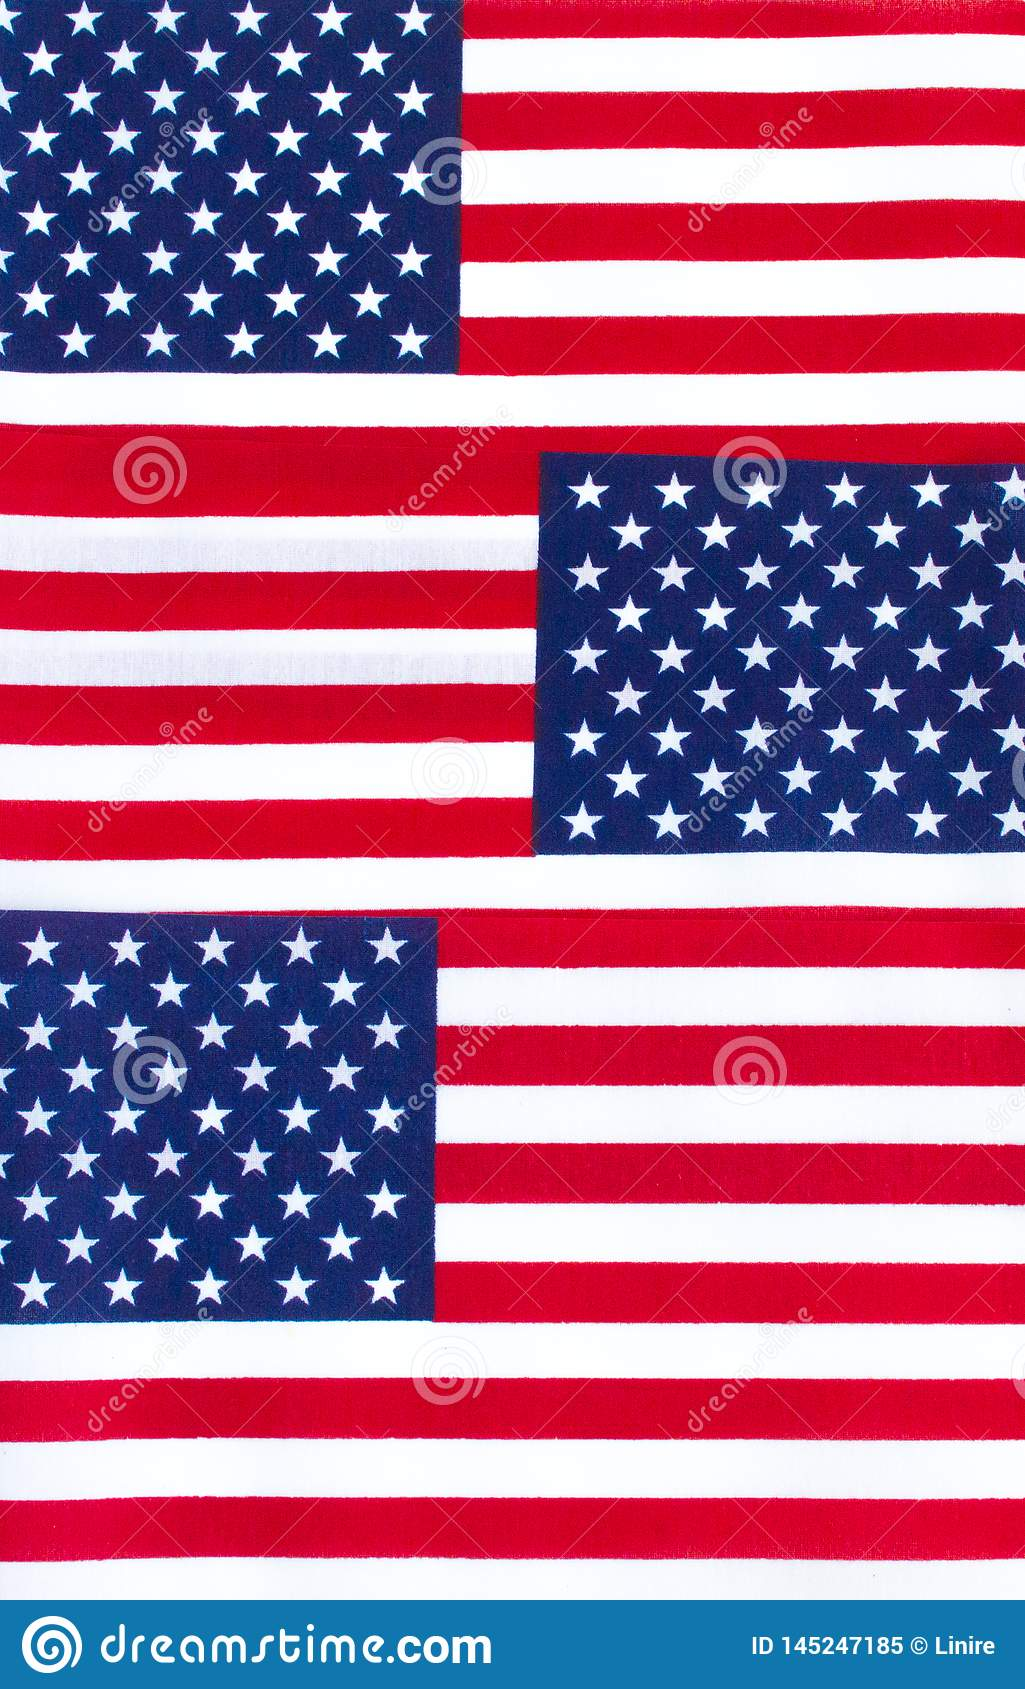 Background Wallpaper Three American Flags In A Row Stock Image